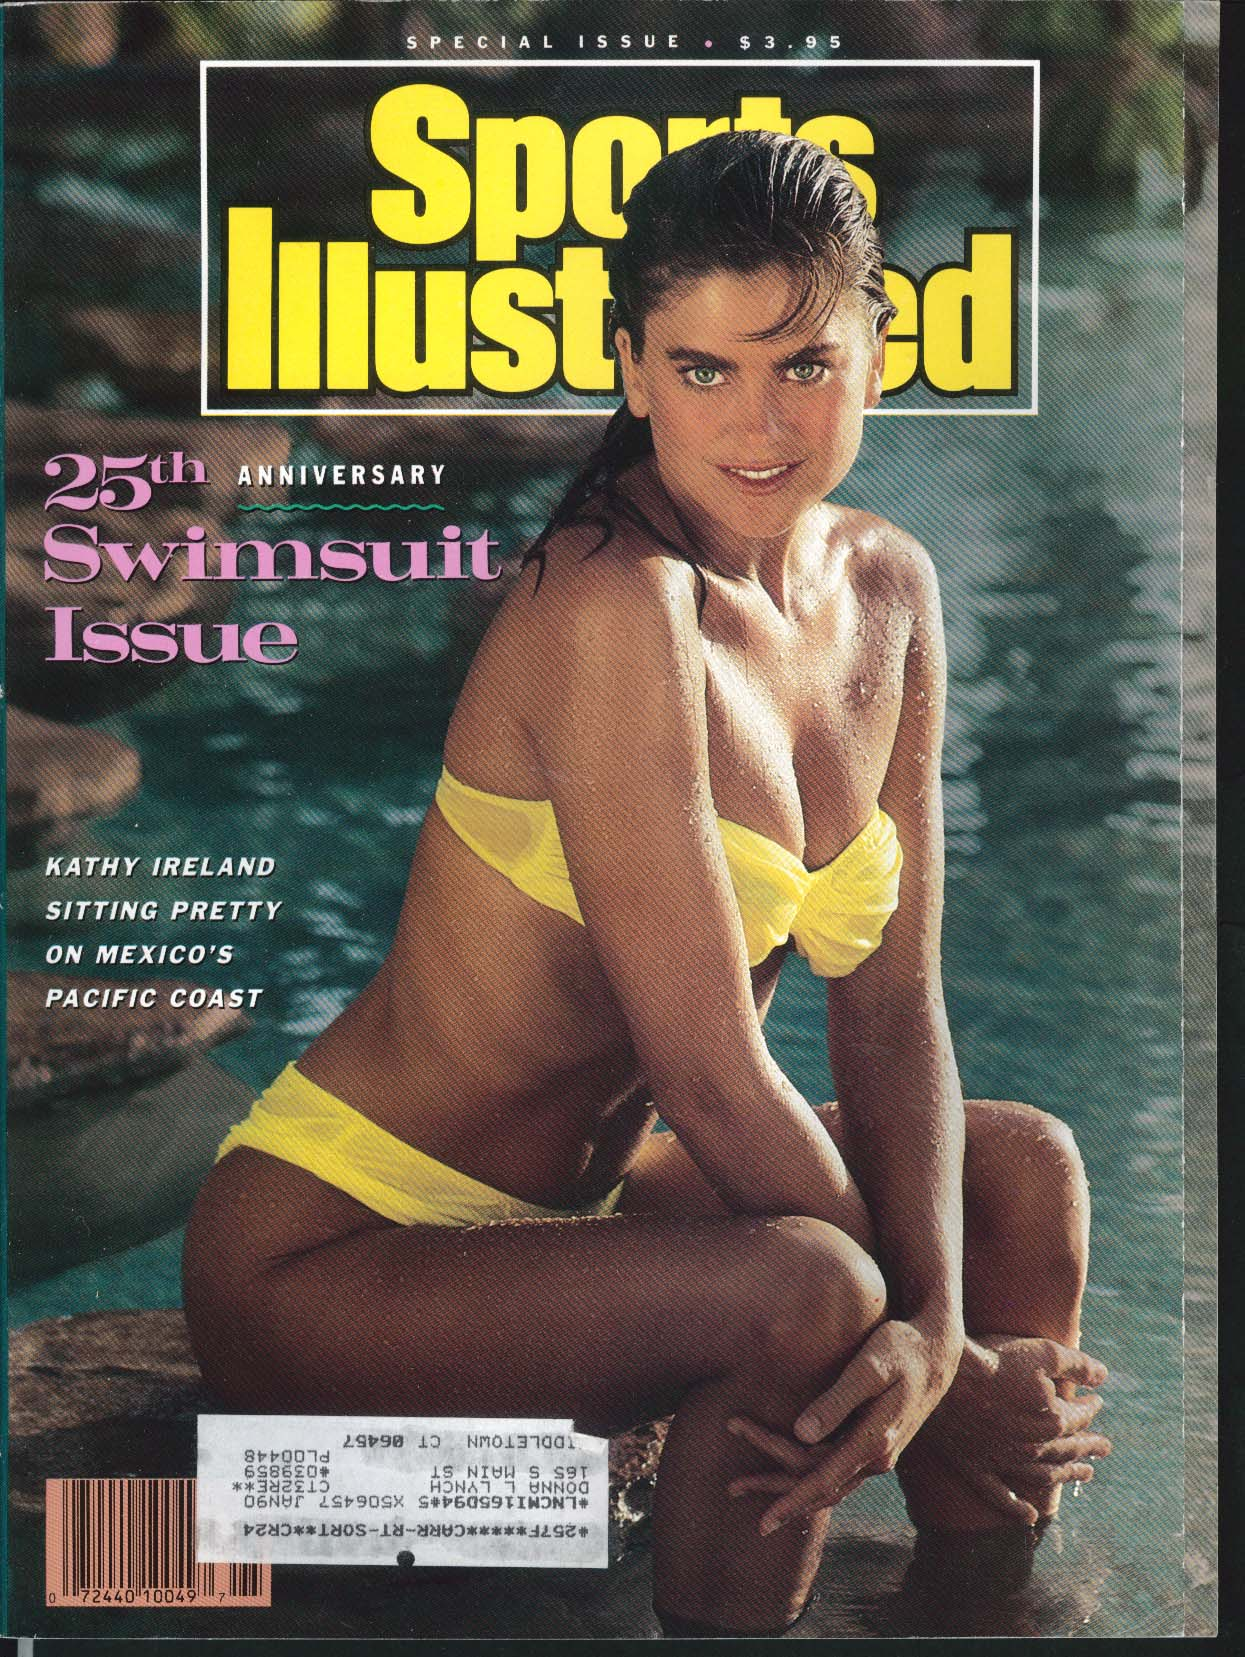 SPORTS ILLUSTRATED Kathy Ireland Cheryl Tiegs Christie Brinkley swimsuit 1989